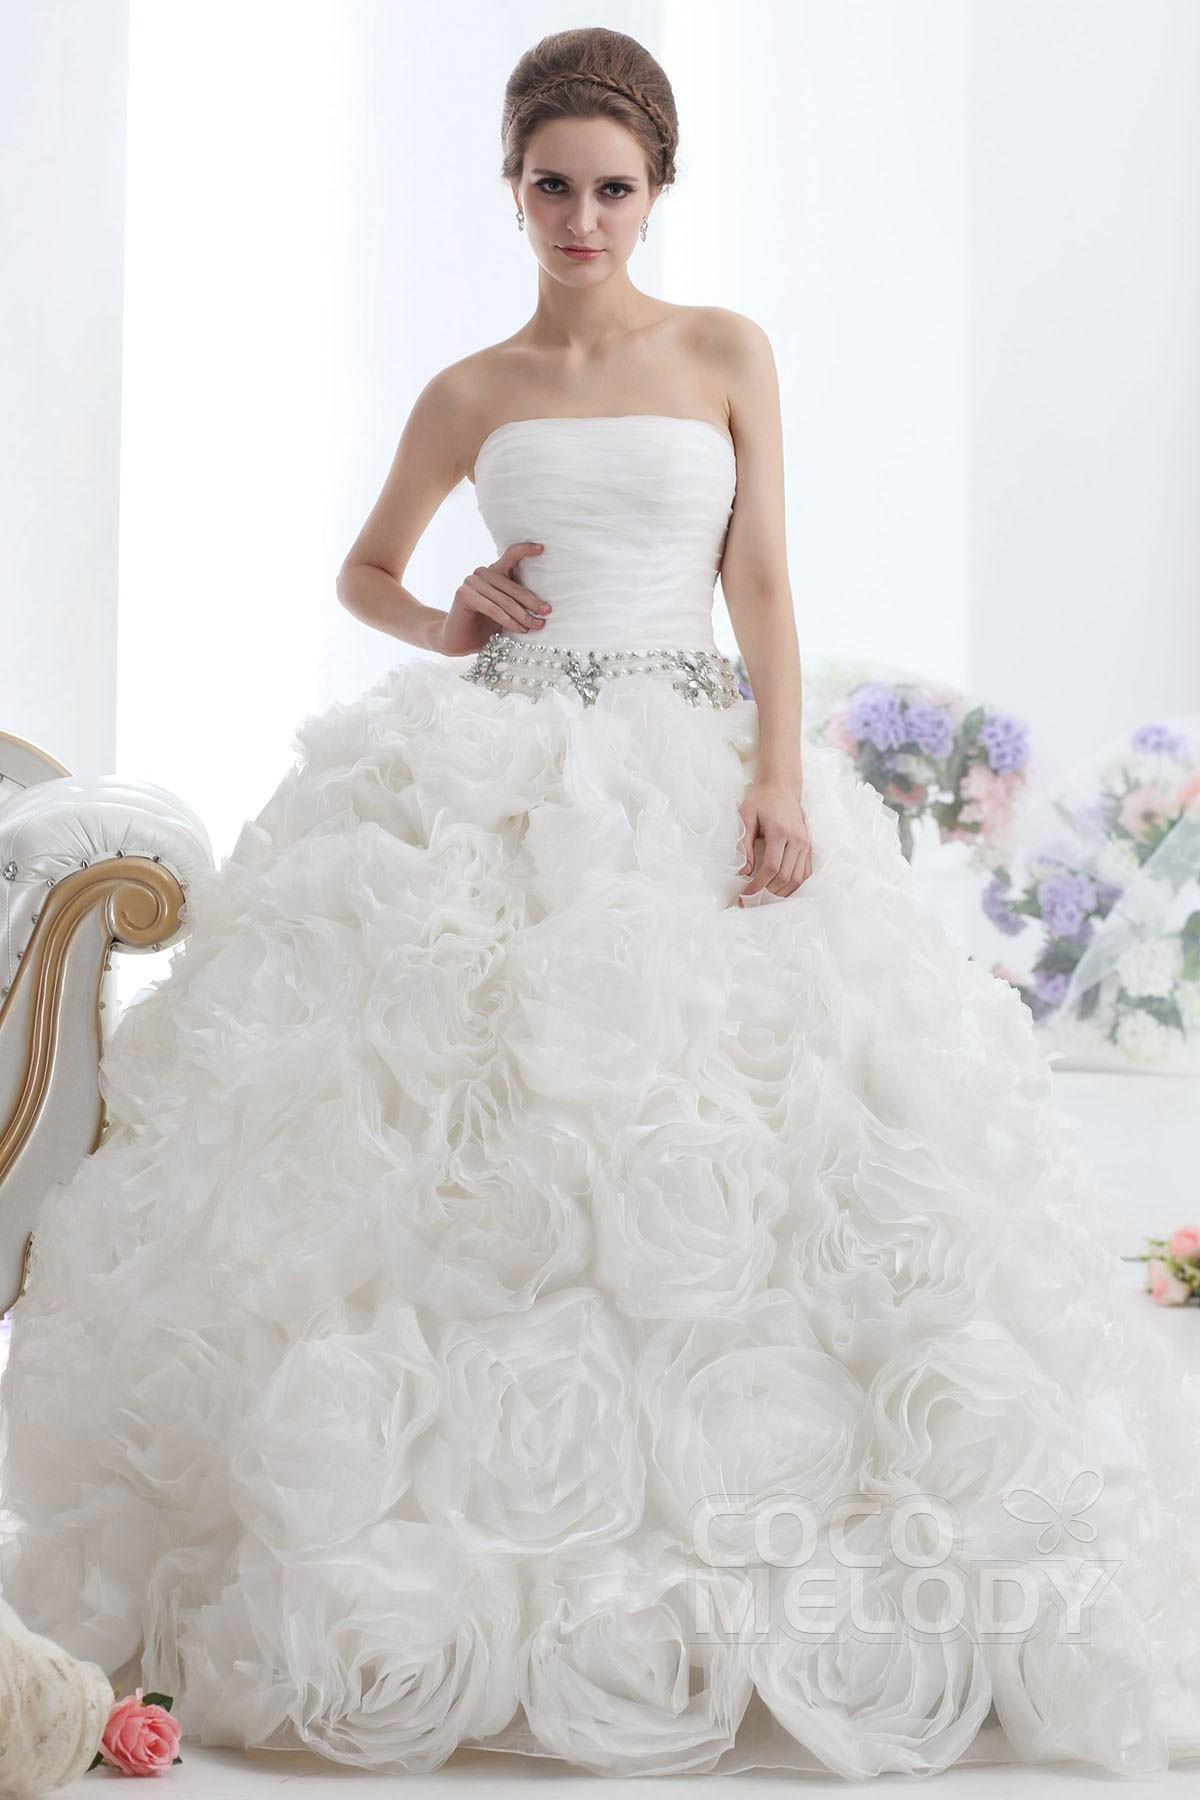 Sophisticated Ball Gown Strapless Cadral Train Organza Wedding Dress Ball Gown Strapless Cadral Train Organza Wedding Ivory Wedding Dress Roses Ivory Wedding Dresses Size wedding dress Ivory Wedding Dress